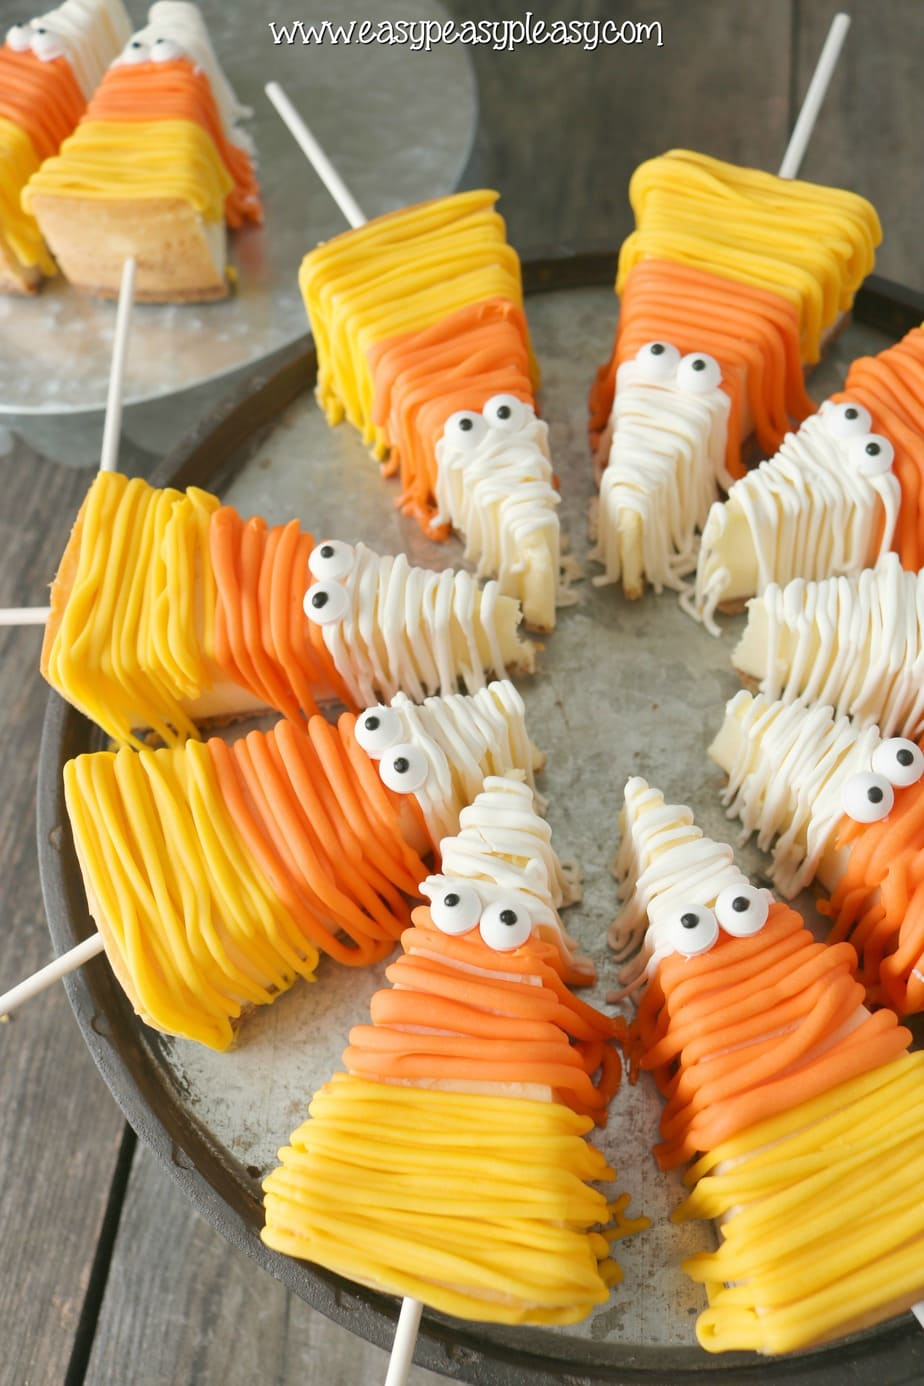 Easy No Bake Candy Corn Cheesecake are the perfect sweet treats for Halloween!